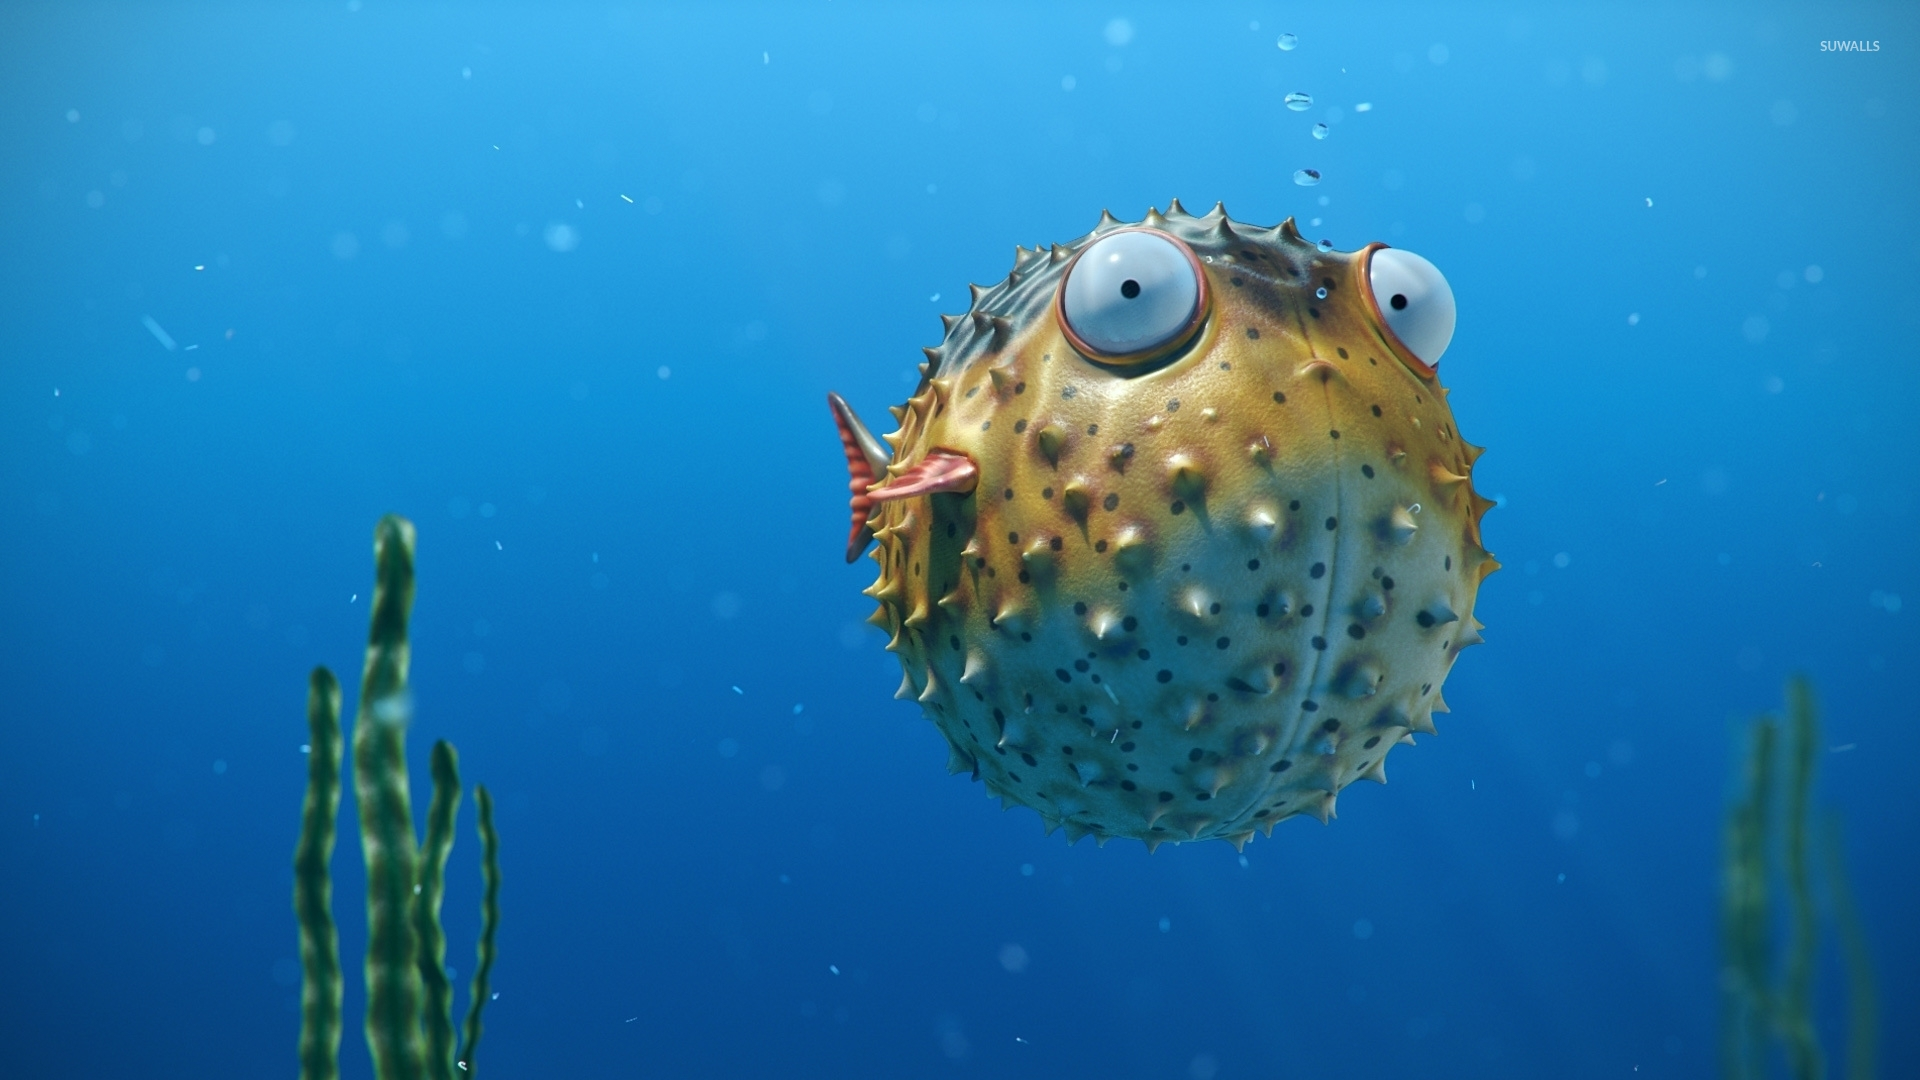 Cute Cloud Wallpaper Blowfish In An Aquarium Wallpaper Digital Art Wallpapers